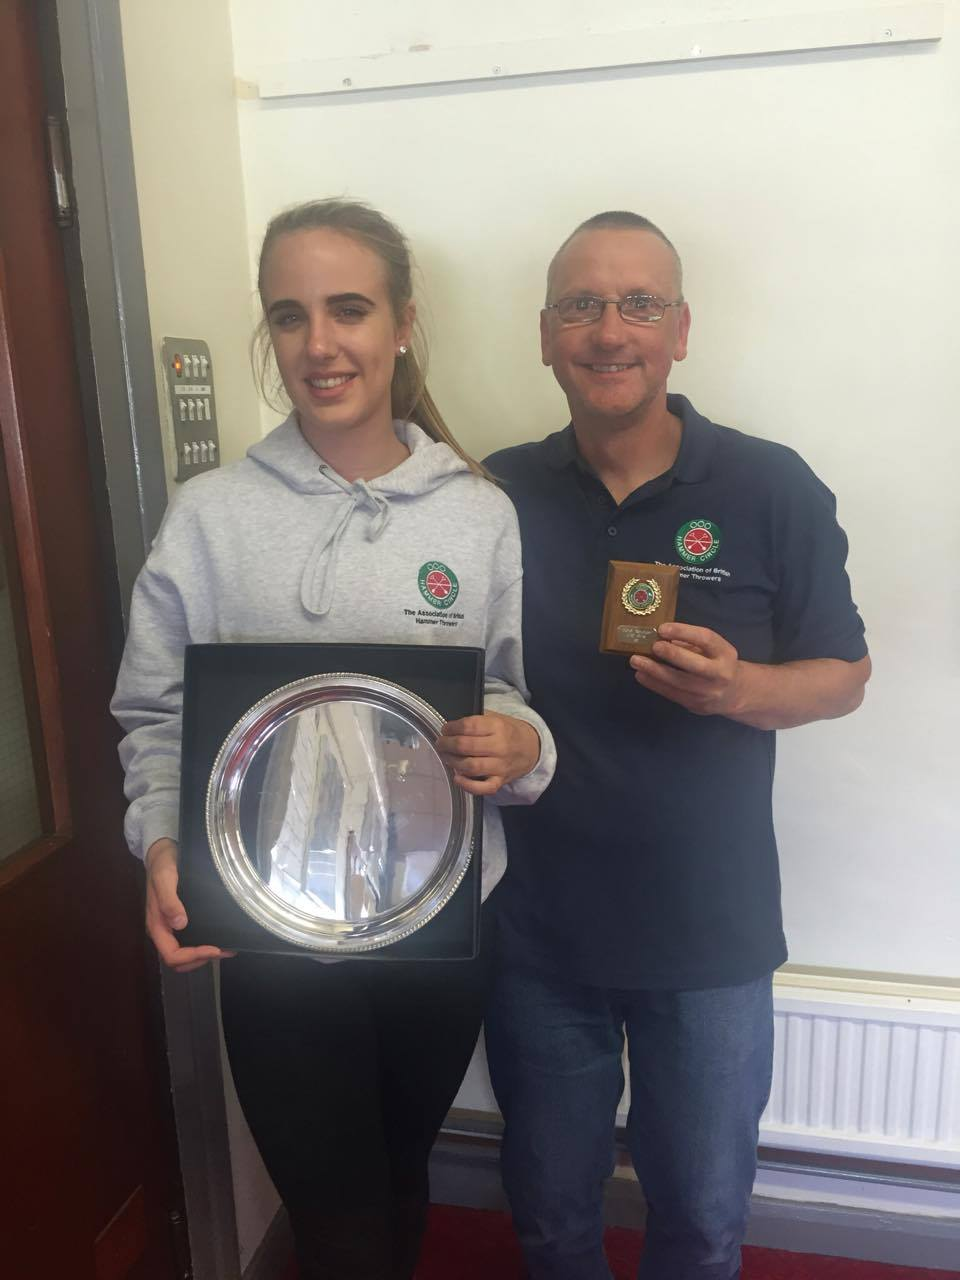 More Awards for Olympic Bronze Medallist Sophie Hitchon – Great season for Charlie ends with 3rd place in the all time British Rankings